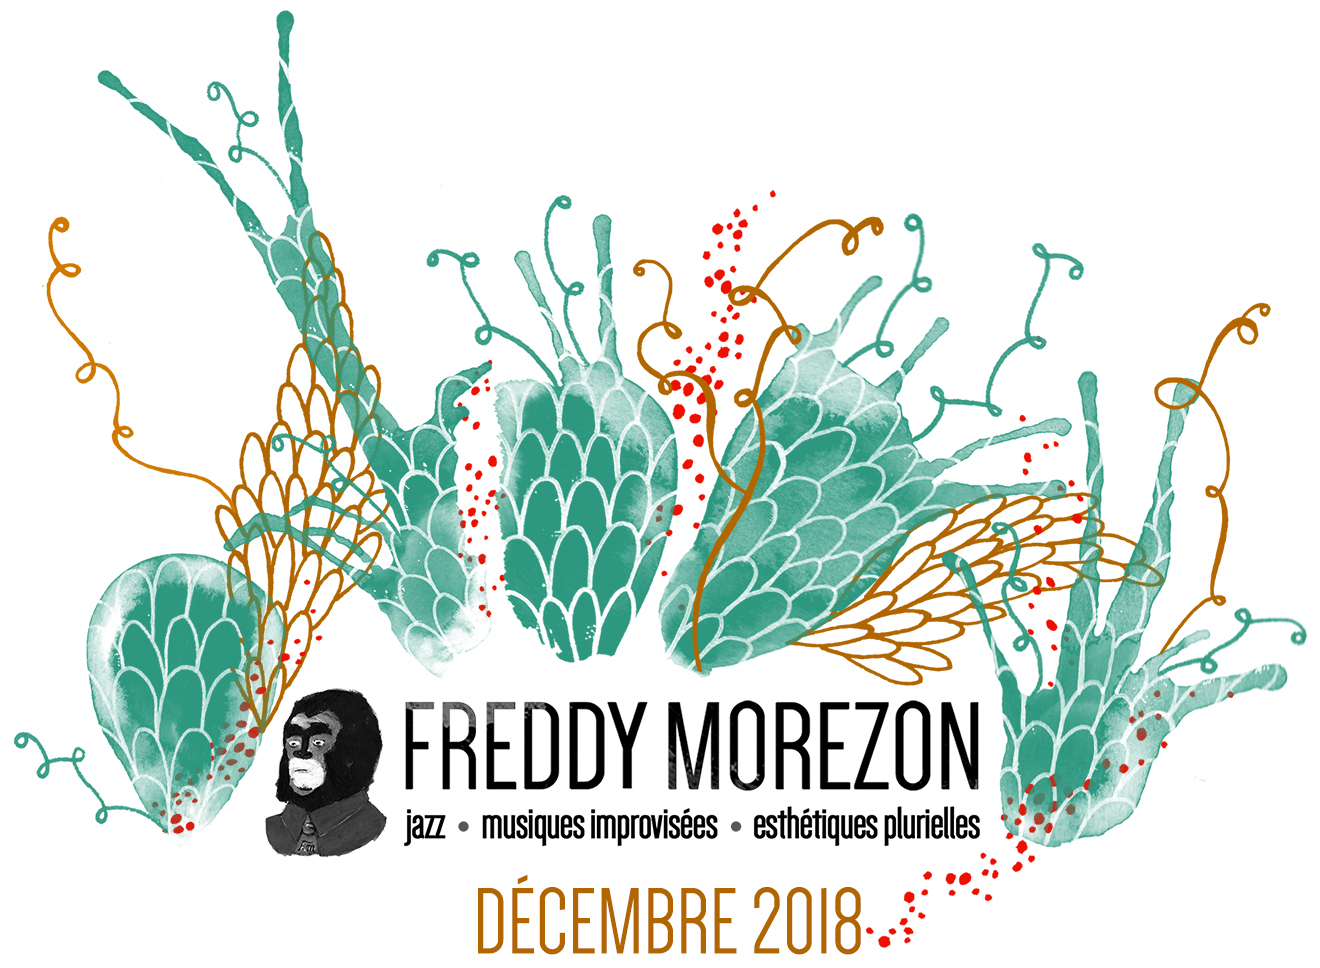 Freddy Morezon - Newsletter decembre 2018